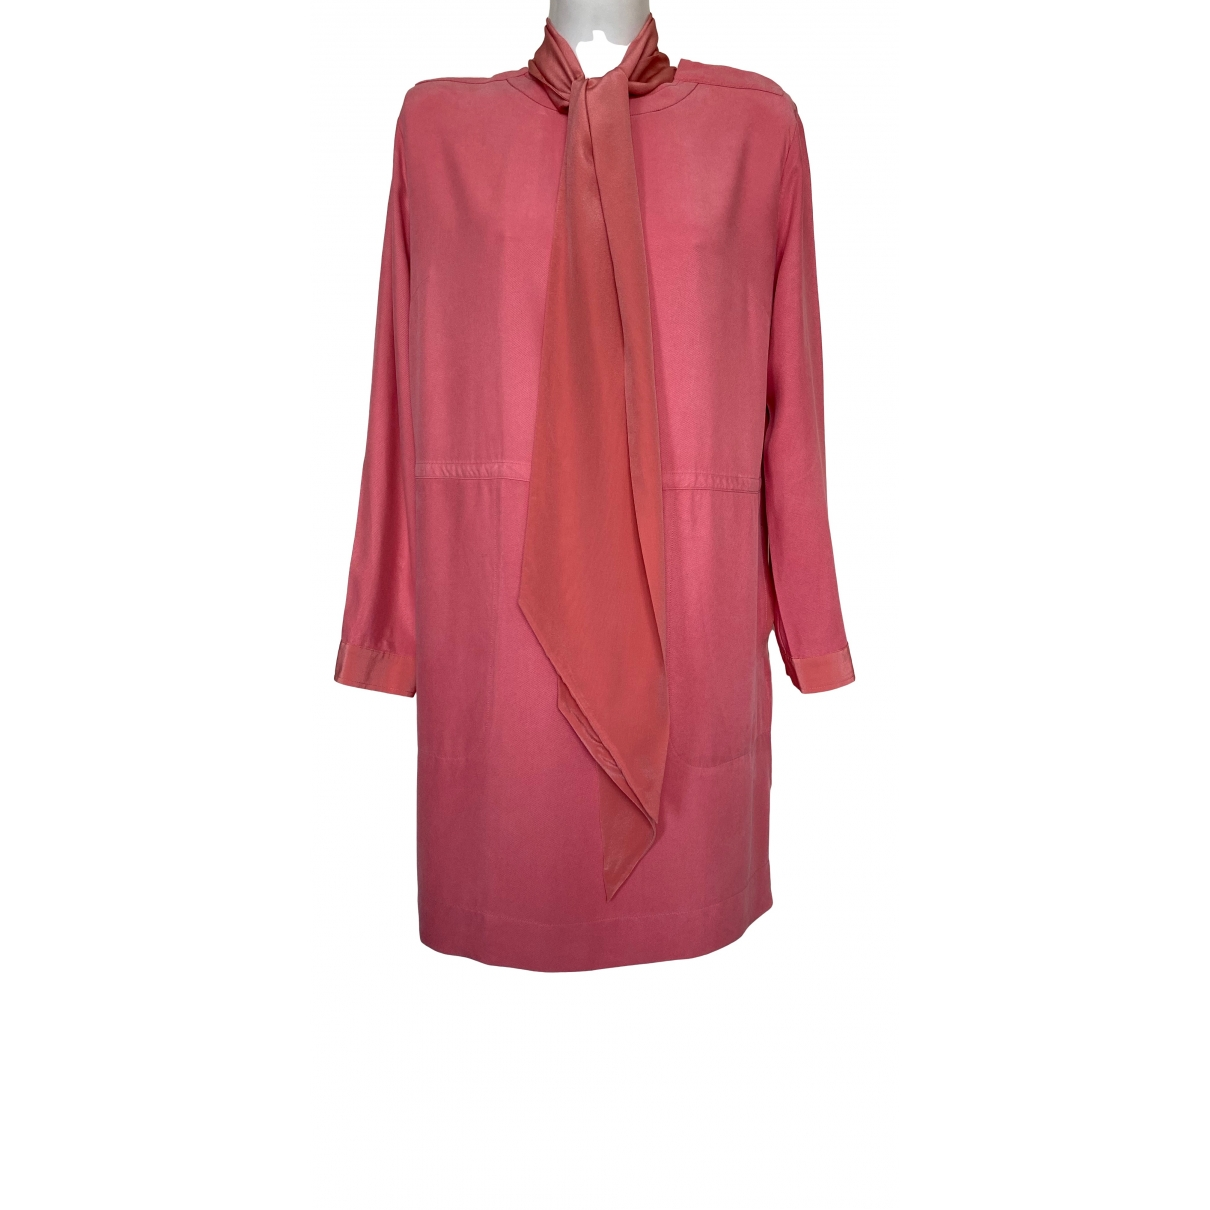 See By Chloé \N Pink dress for Women 40 FR